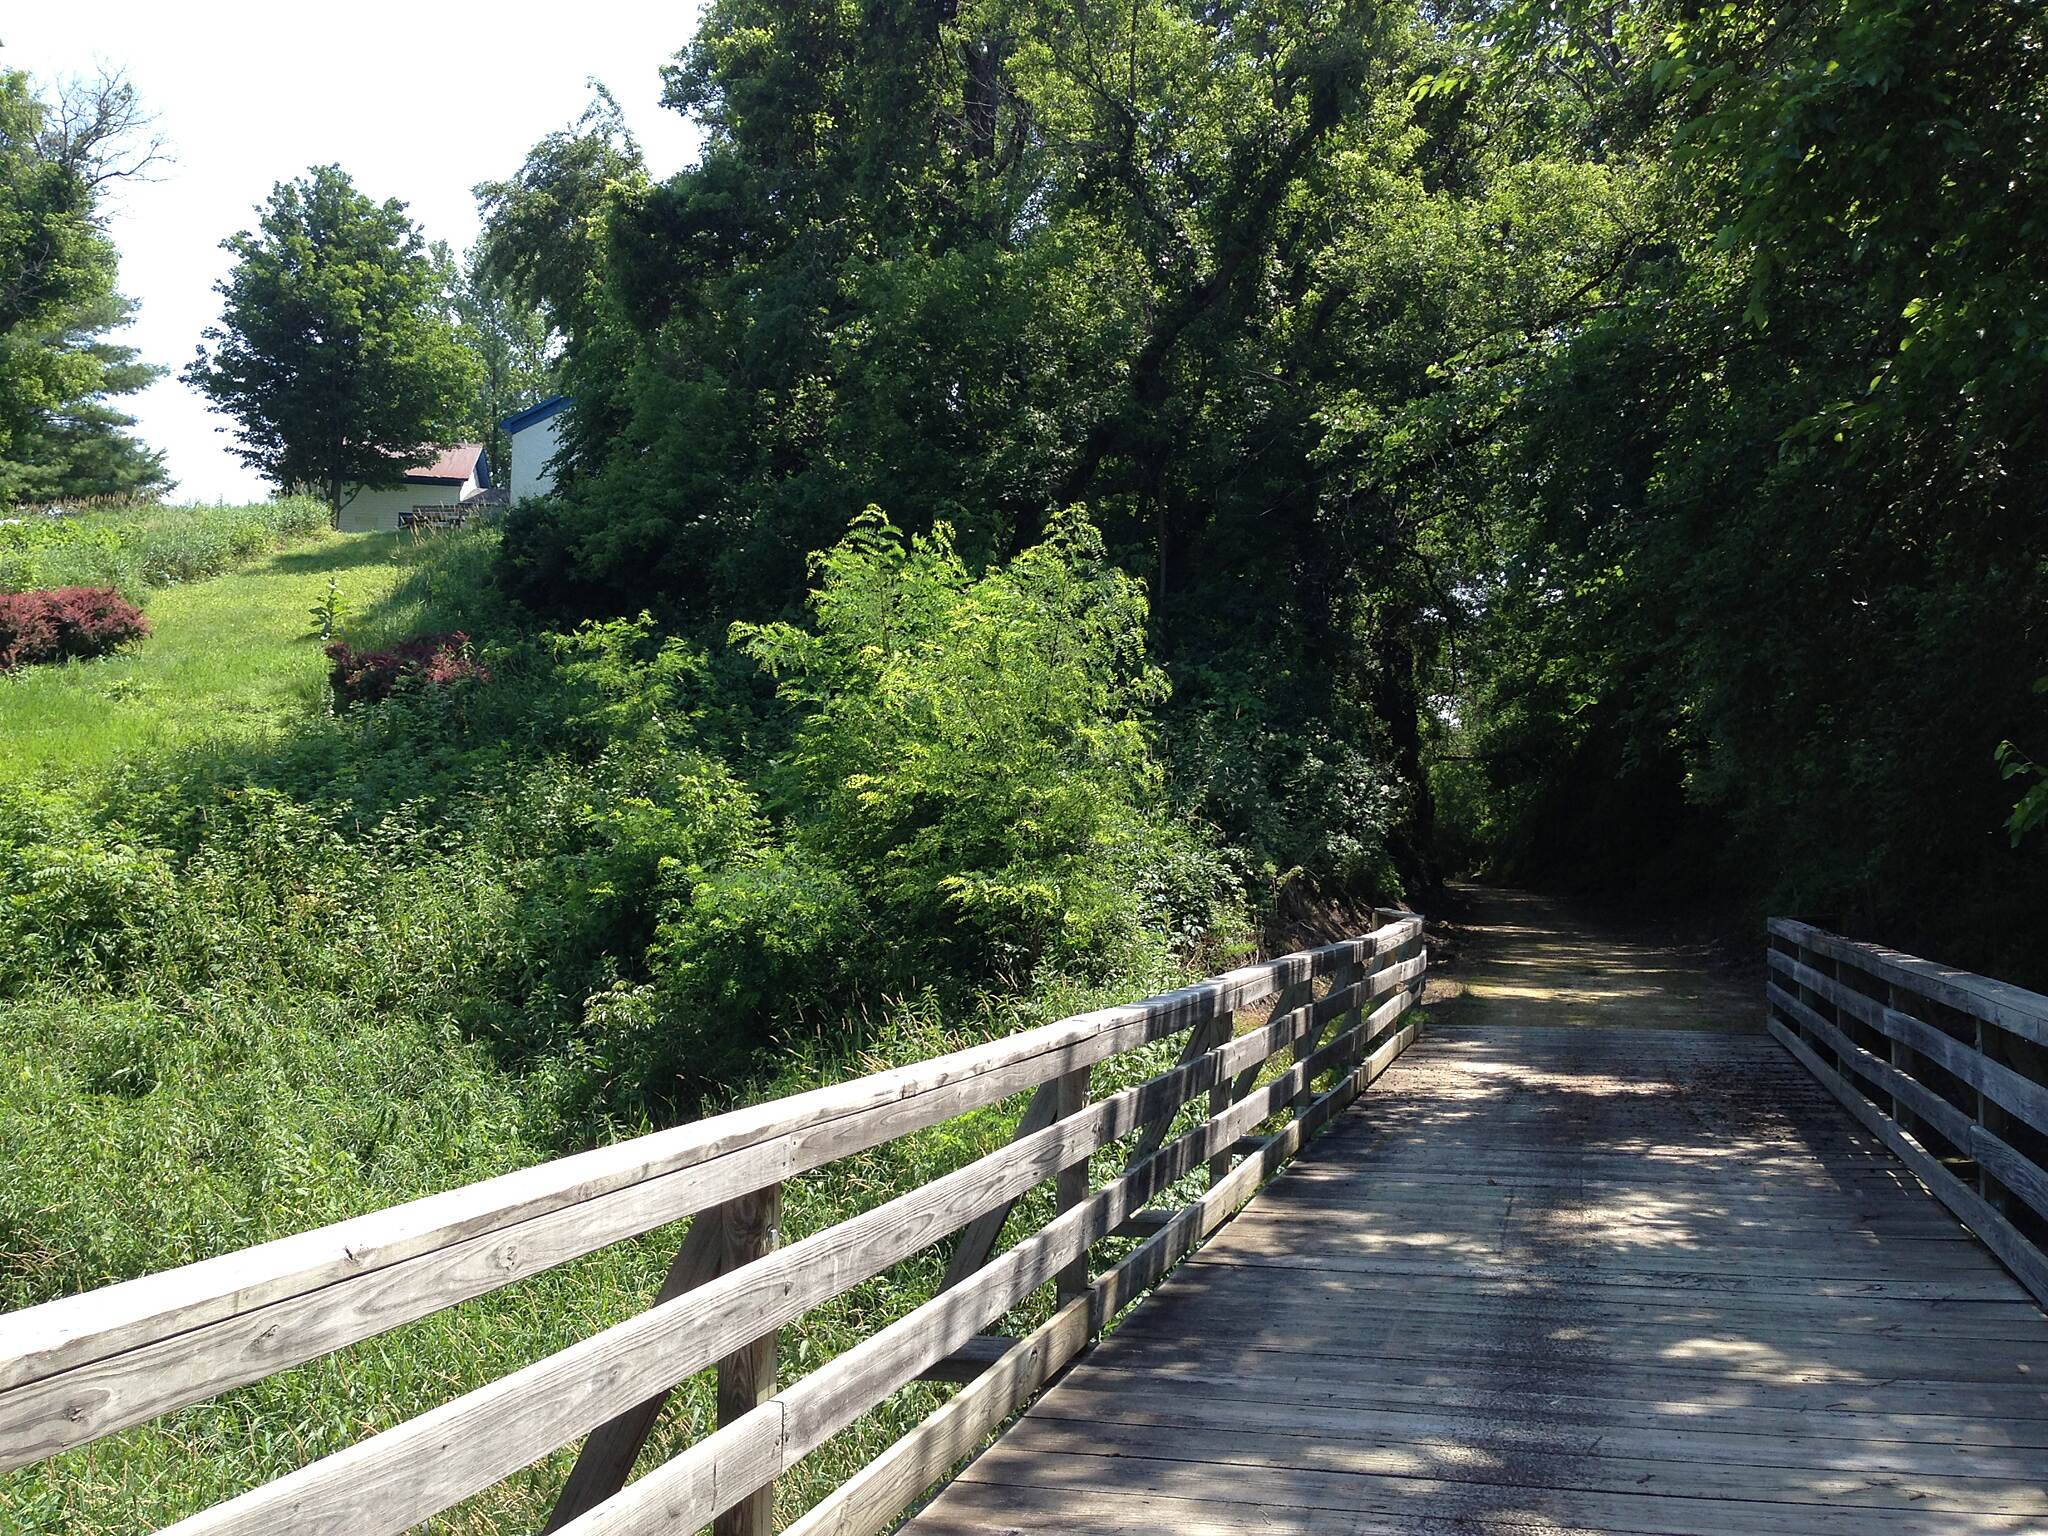 Jane Addams Trail Pretty bridge